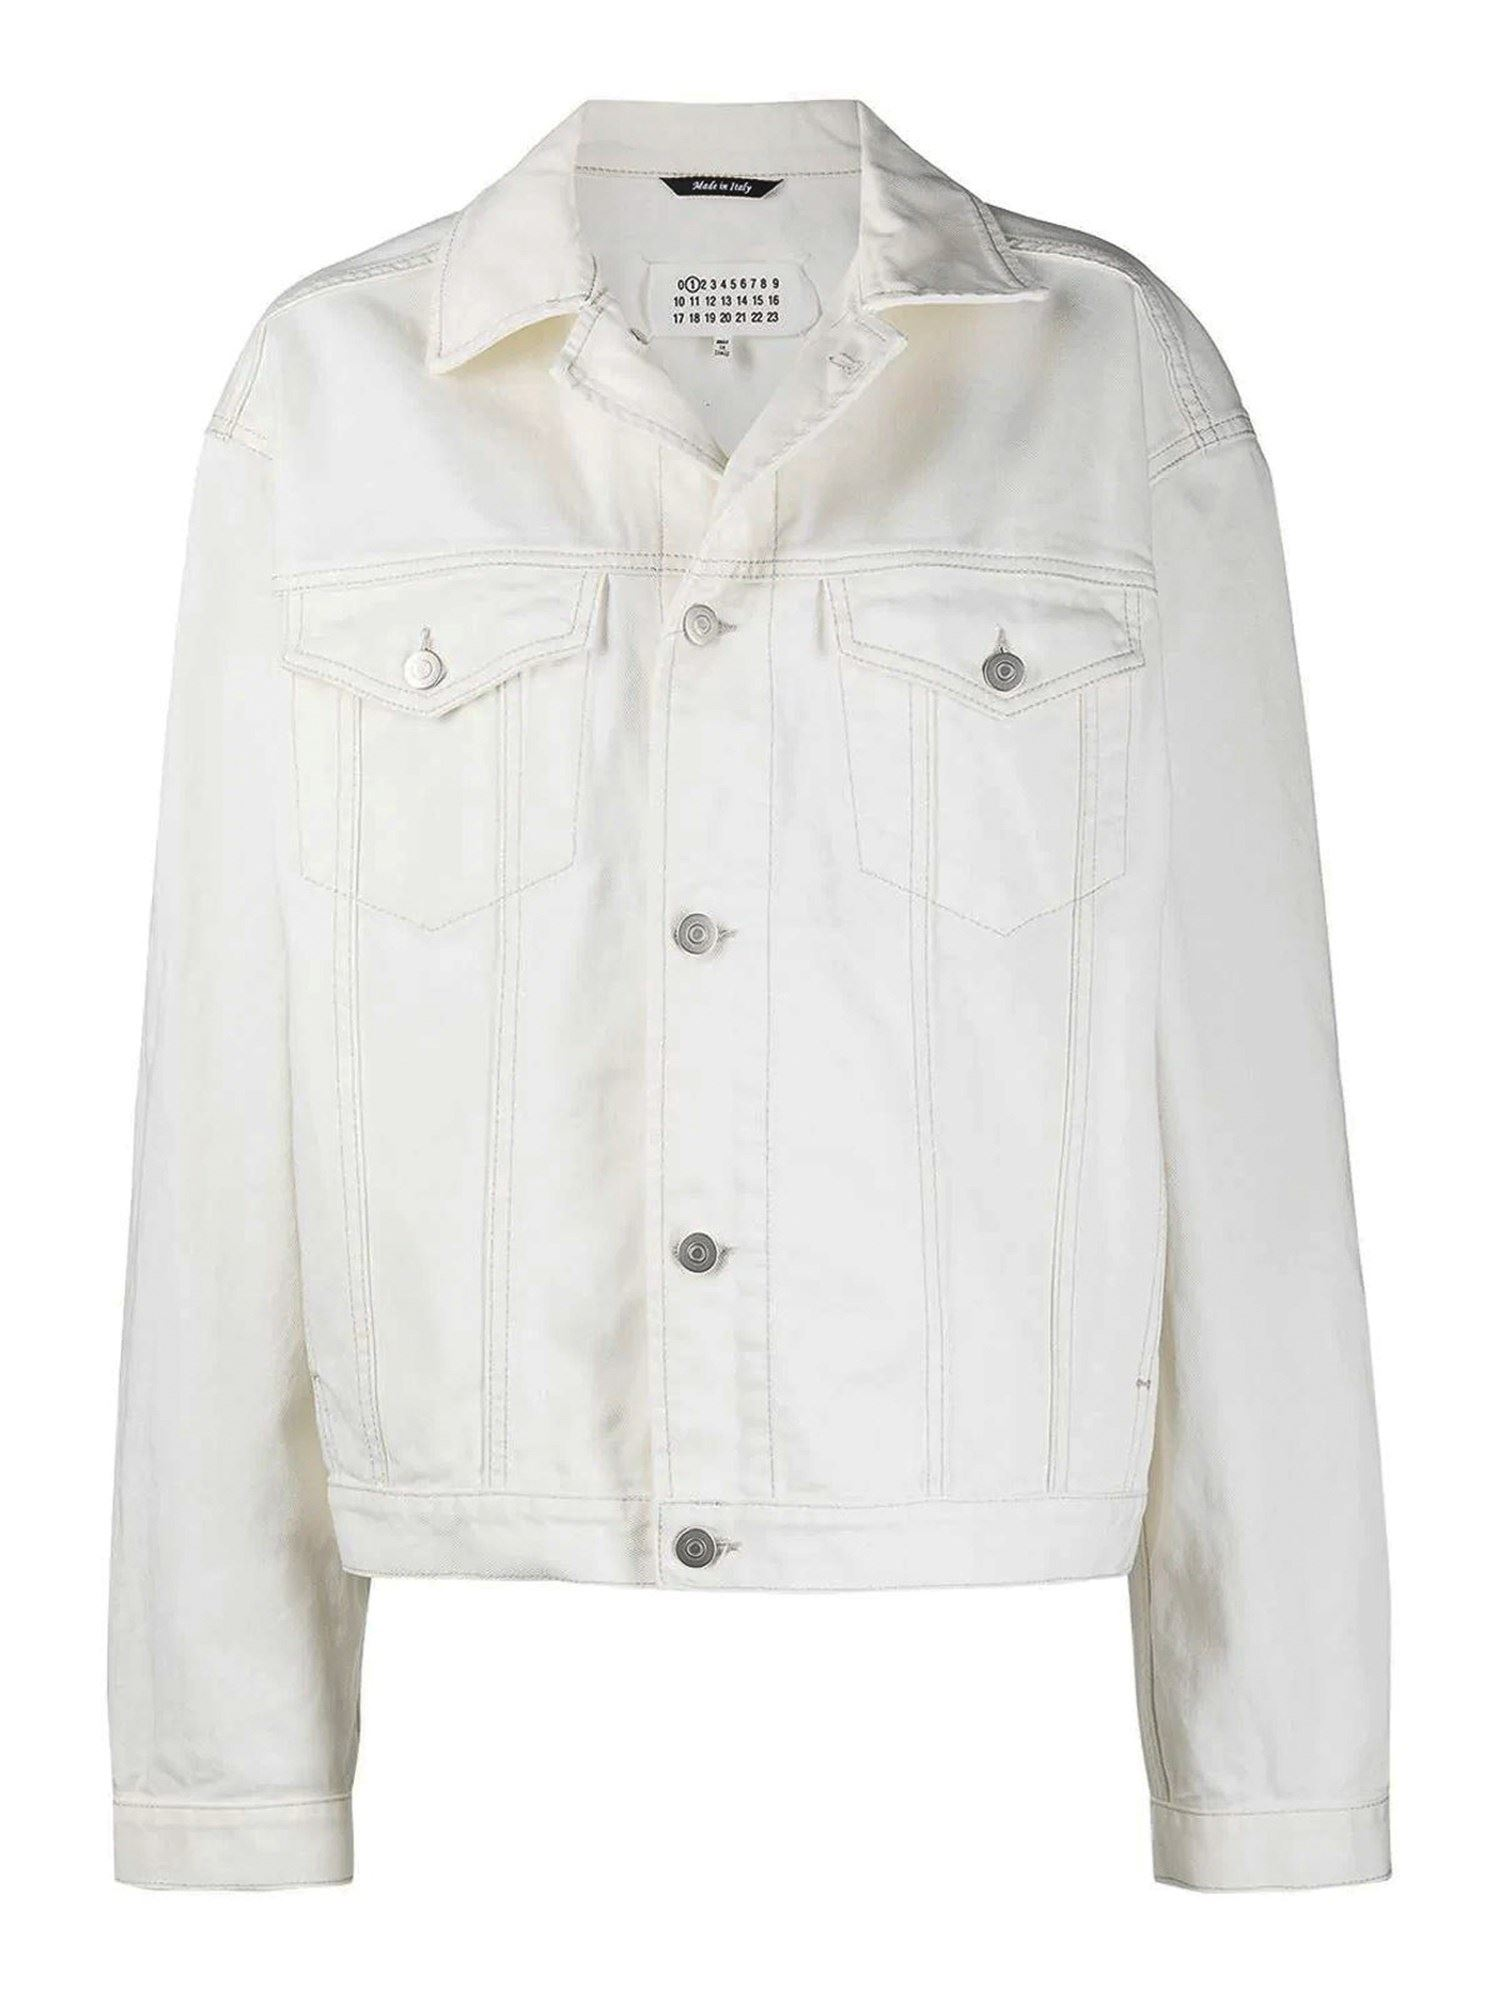 Maison Margiela DENIM JACKET IN WHITE